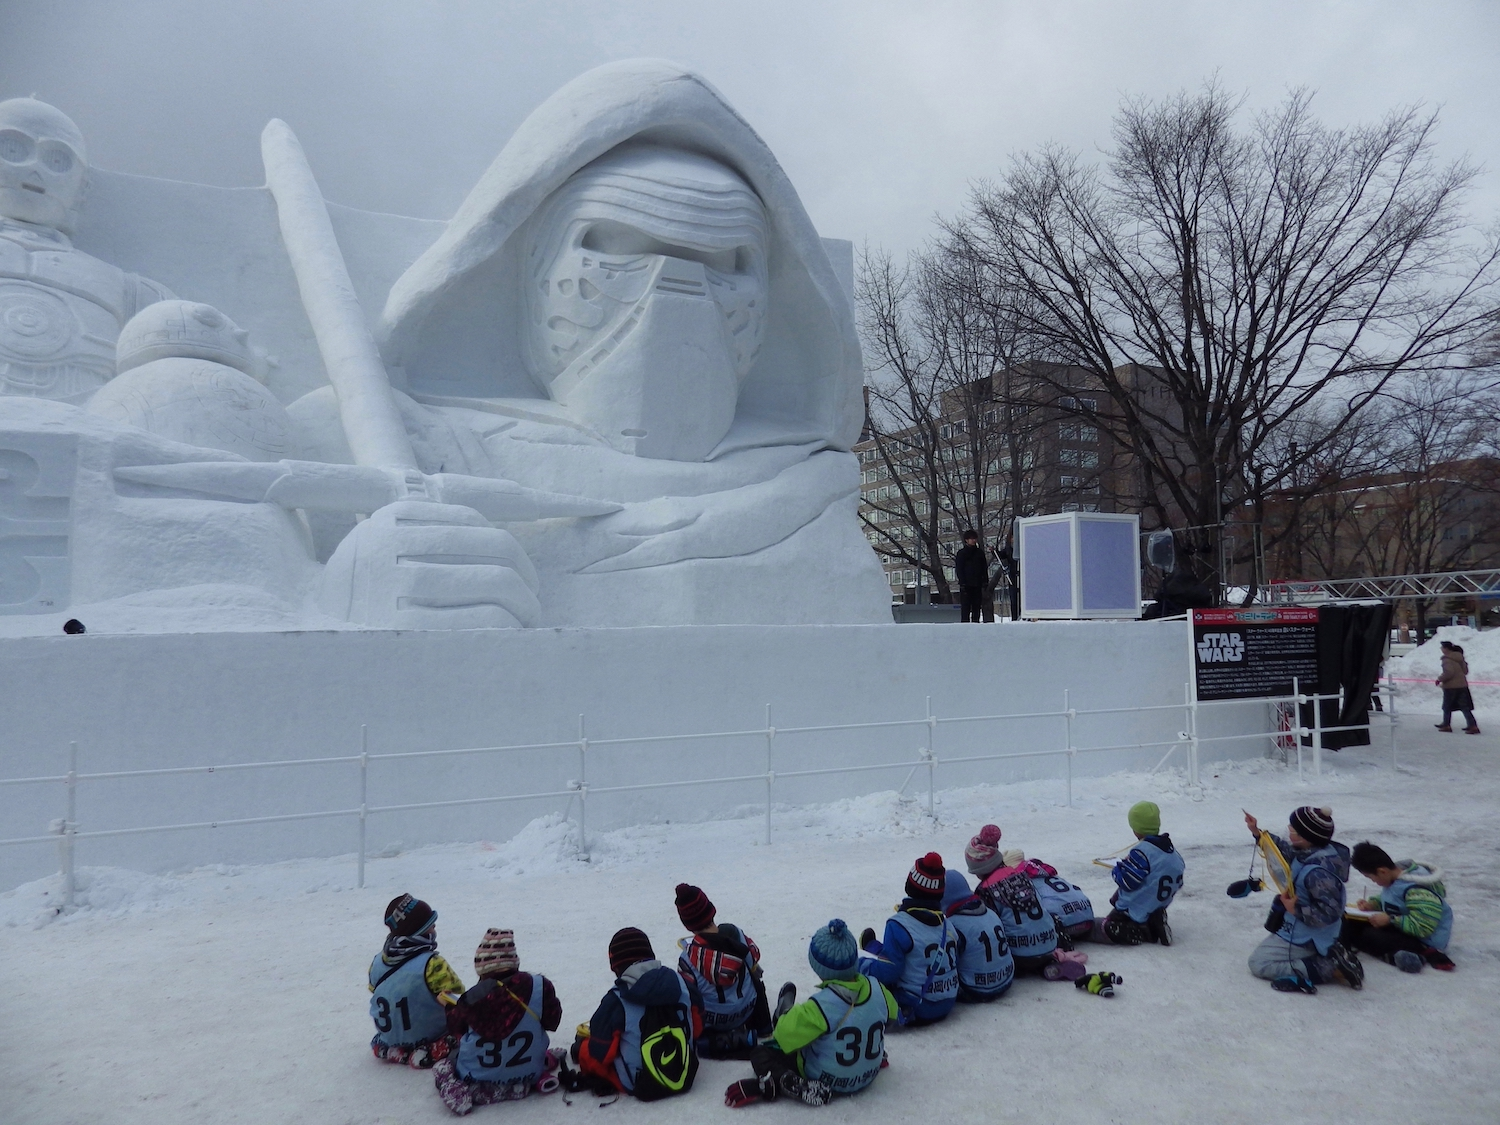 Kylo Ren addresses a group of younglings (most likely before slaughtering them with his crossguard lightsaber) during the 2017 Sapporo Snow Festival in Japan.